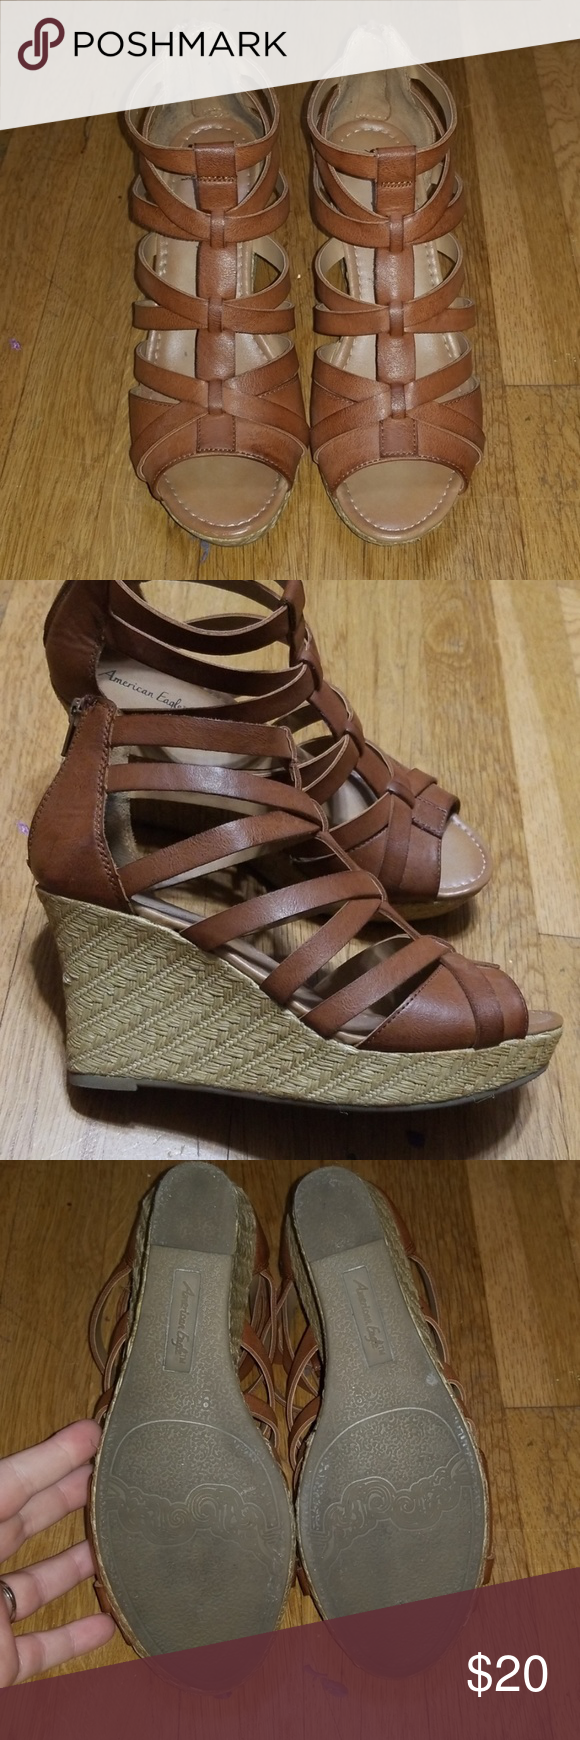 c213a02f28 Brown strappy wedge sandals Strappy, adorable wedges that scream flirty  spring or summer dress! Gladiator strappy style with twine detail on  platforms.